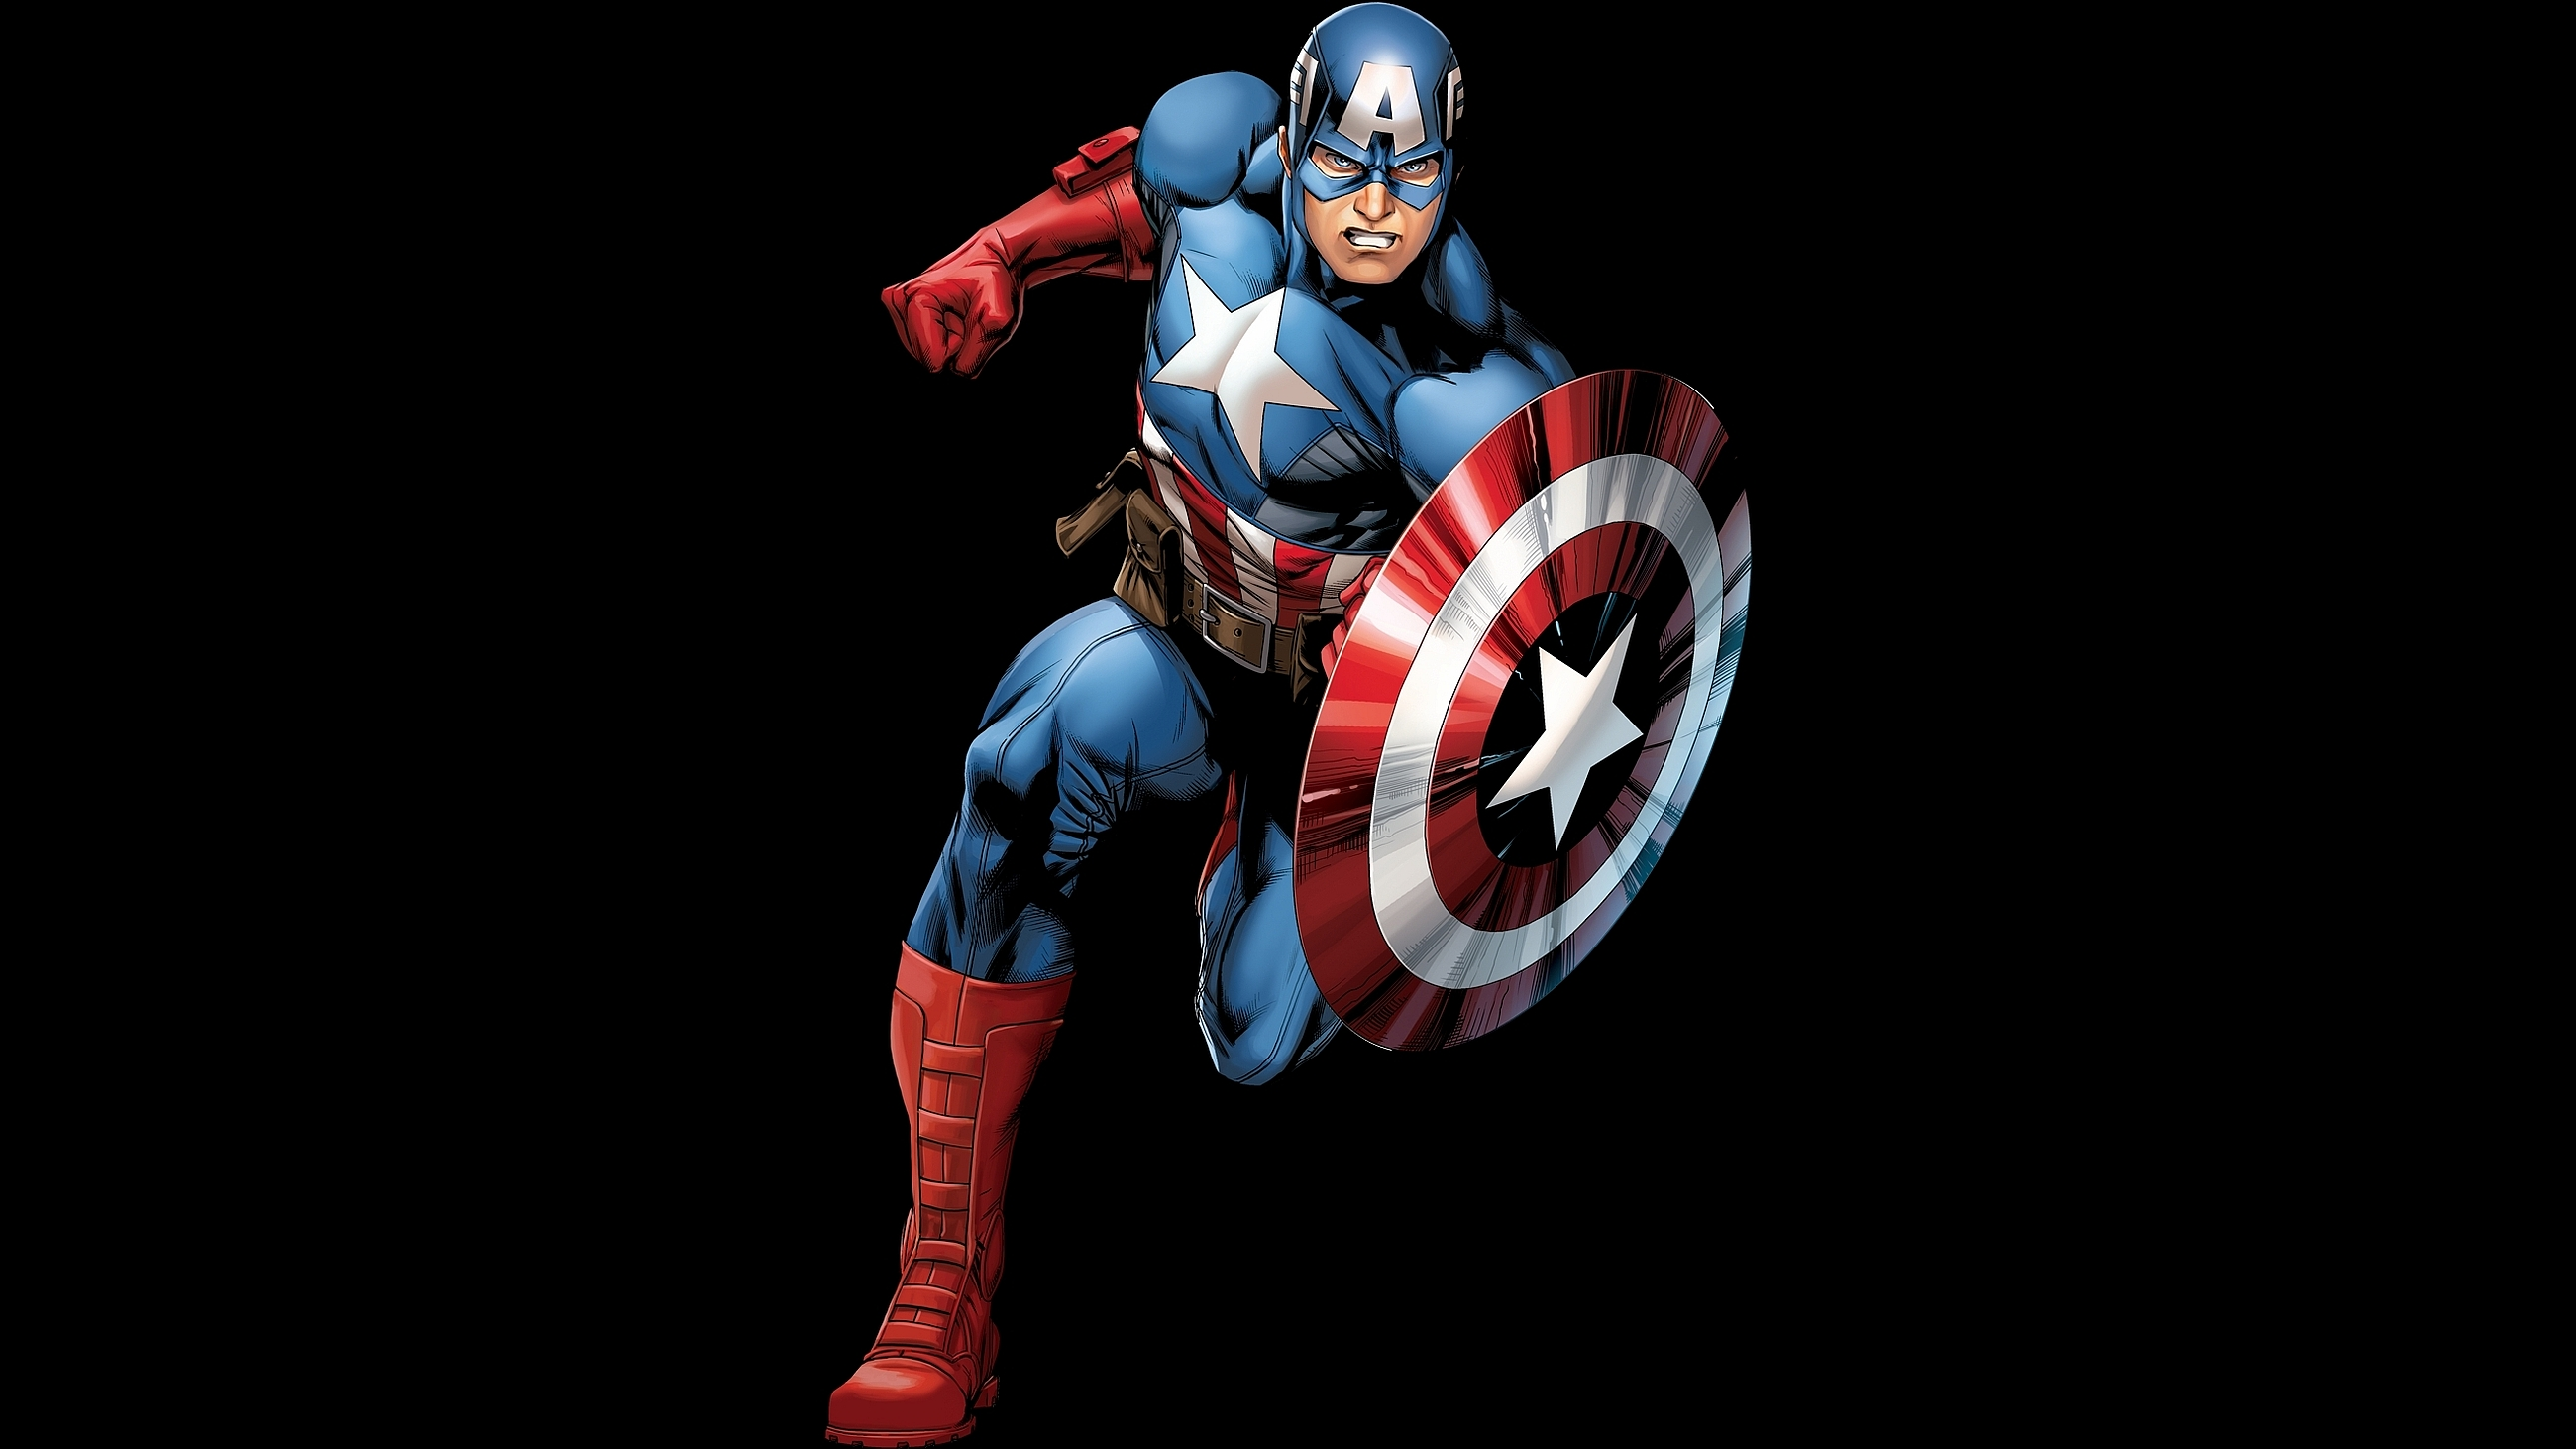 marvel super comic hero captain america first avenger hd wallpaper